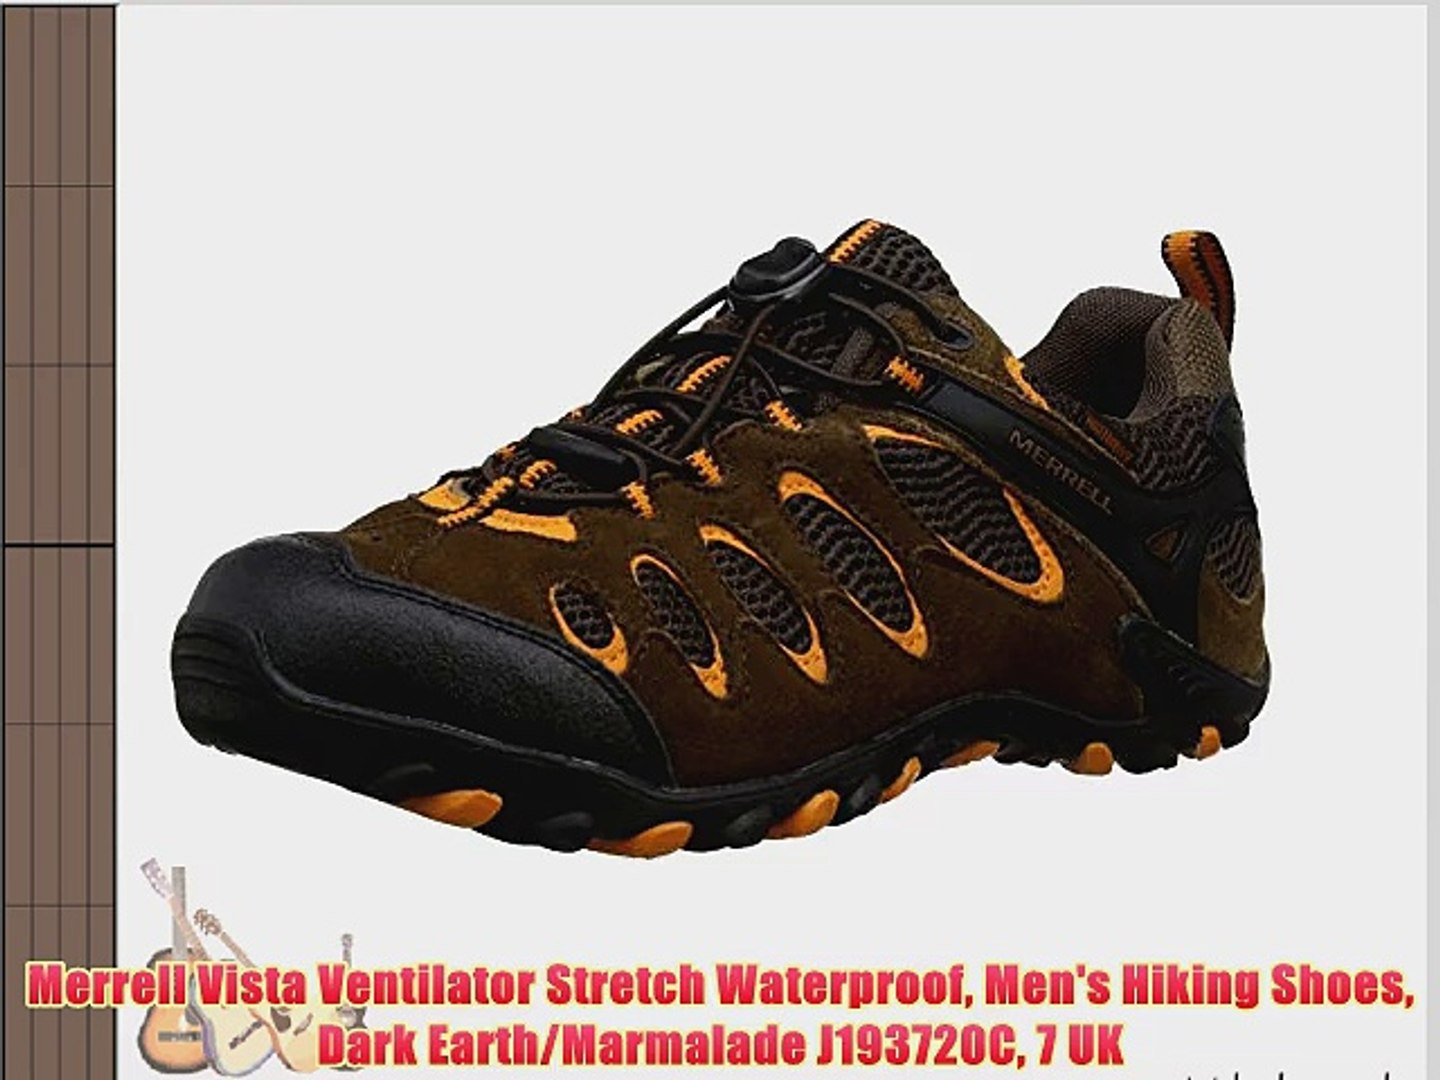 Merrell Vista Ventilator Stretch Waterproof Men's Hiking Shoes Dark  Earth/Marmalade J193720C